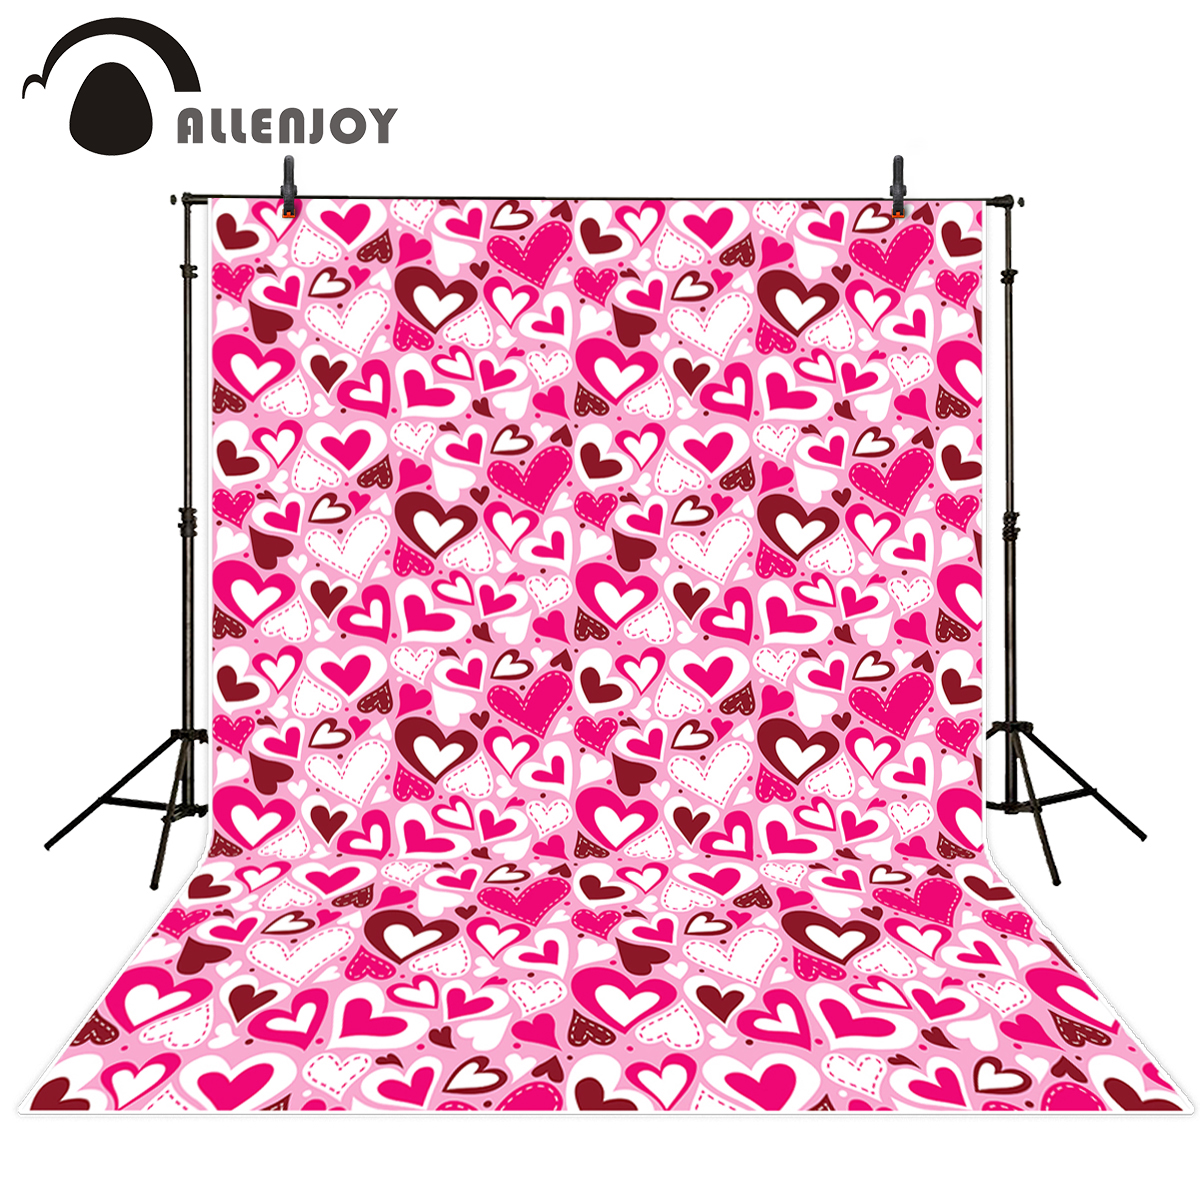 Allenjoy photography backdrops Valentine's Day love pink wedding hearts background for studio photo Funds for wedding allenjoy photography backdrops valentine s day heart love pink bokeh wedding photography background for studio photo background